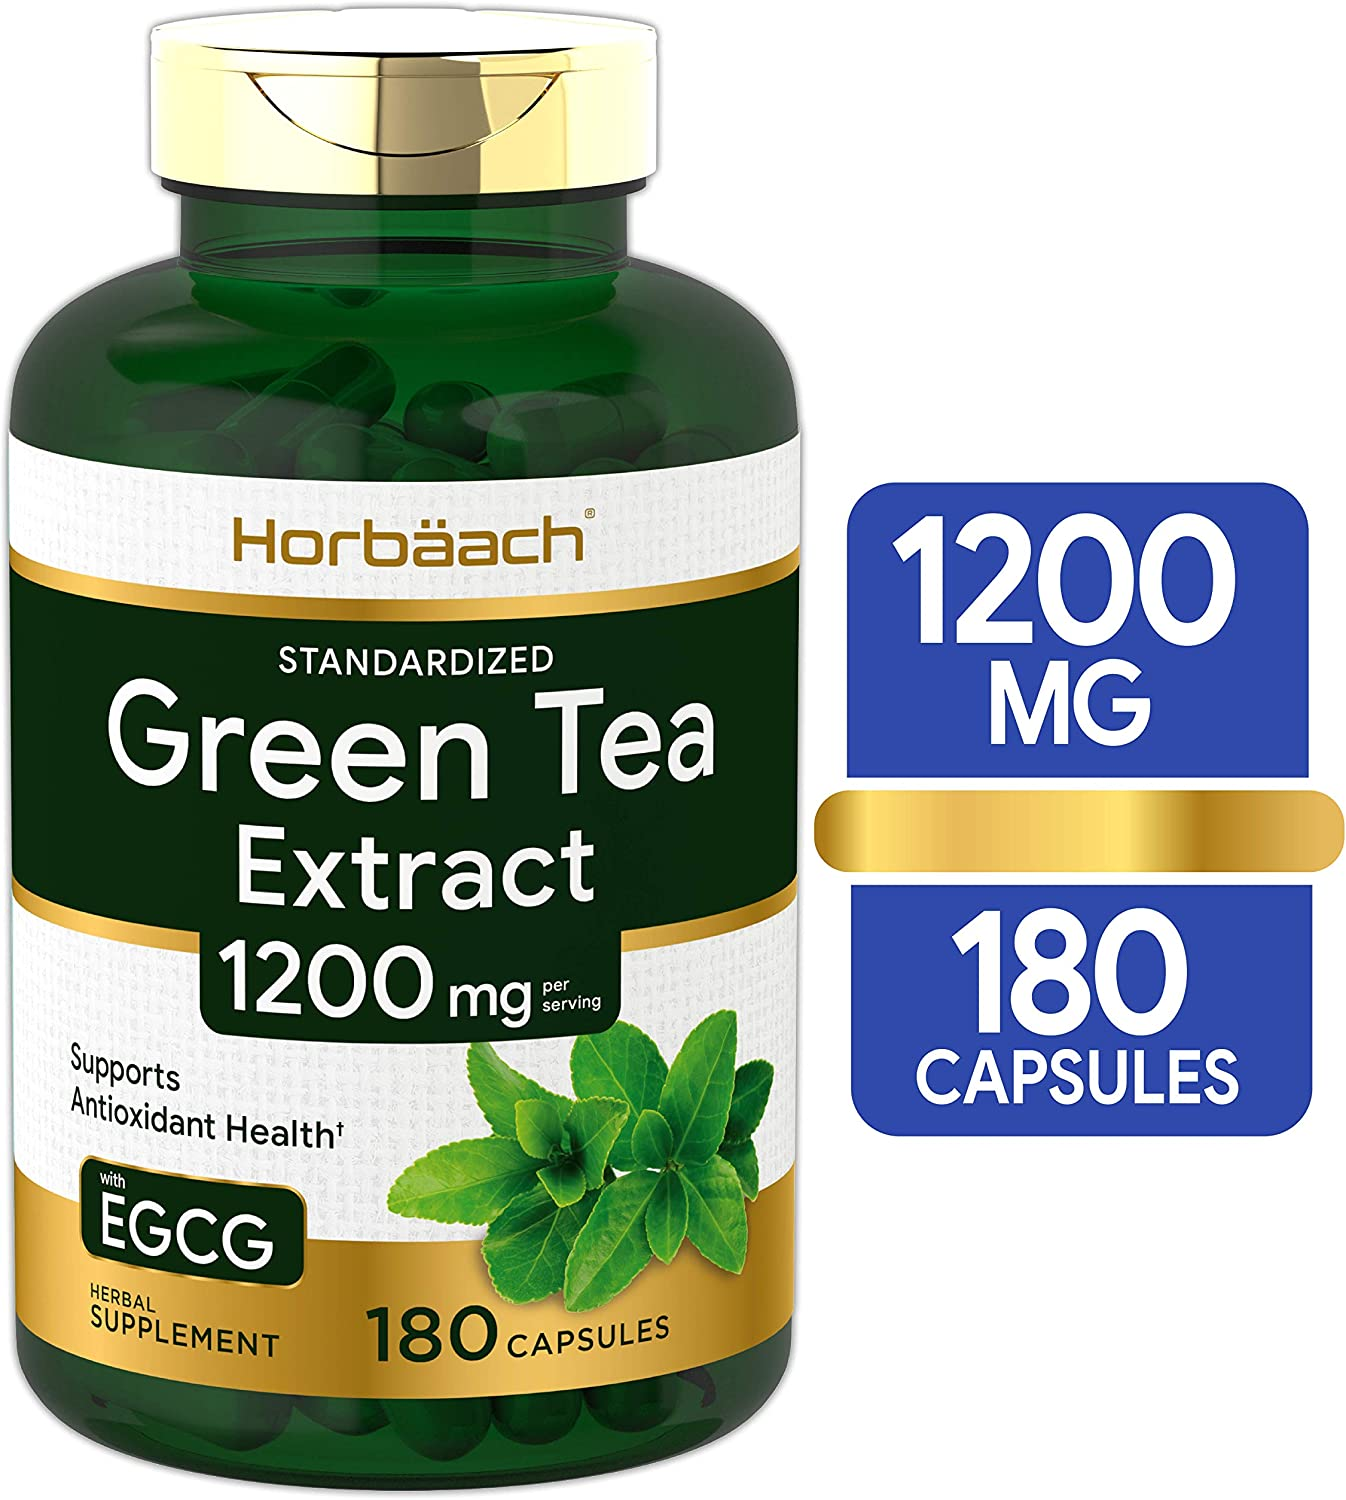 EGCG Green Tea Extract Pills | 1200 mg 180 Capsules | Max Potency | Non-GMO & Gluten Free Supplement | by Horbaach: Health & Personal Care